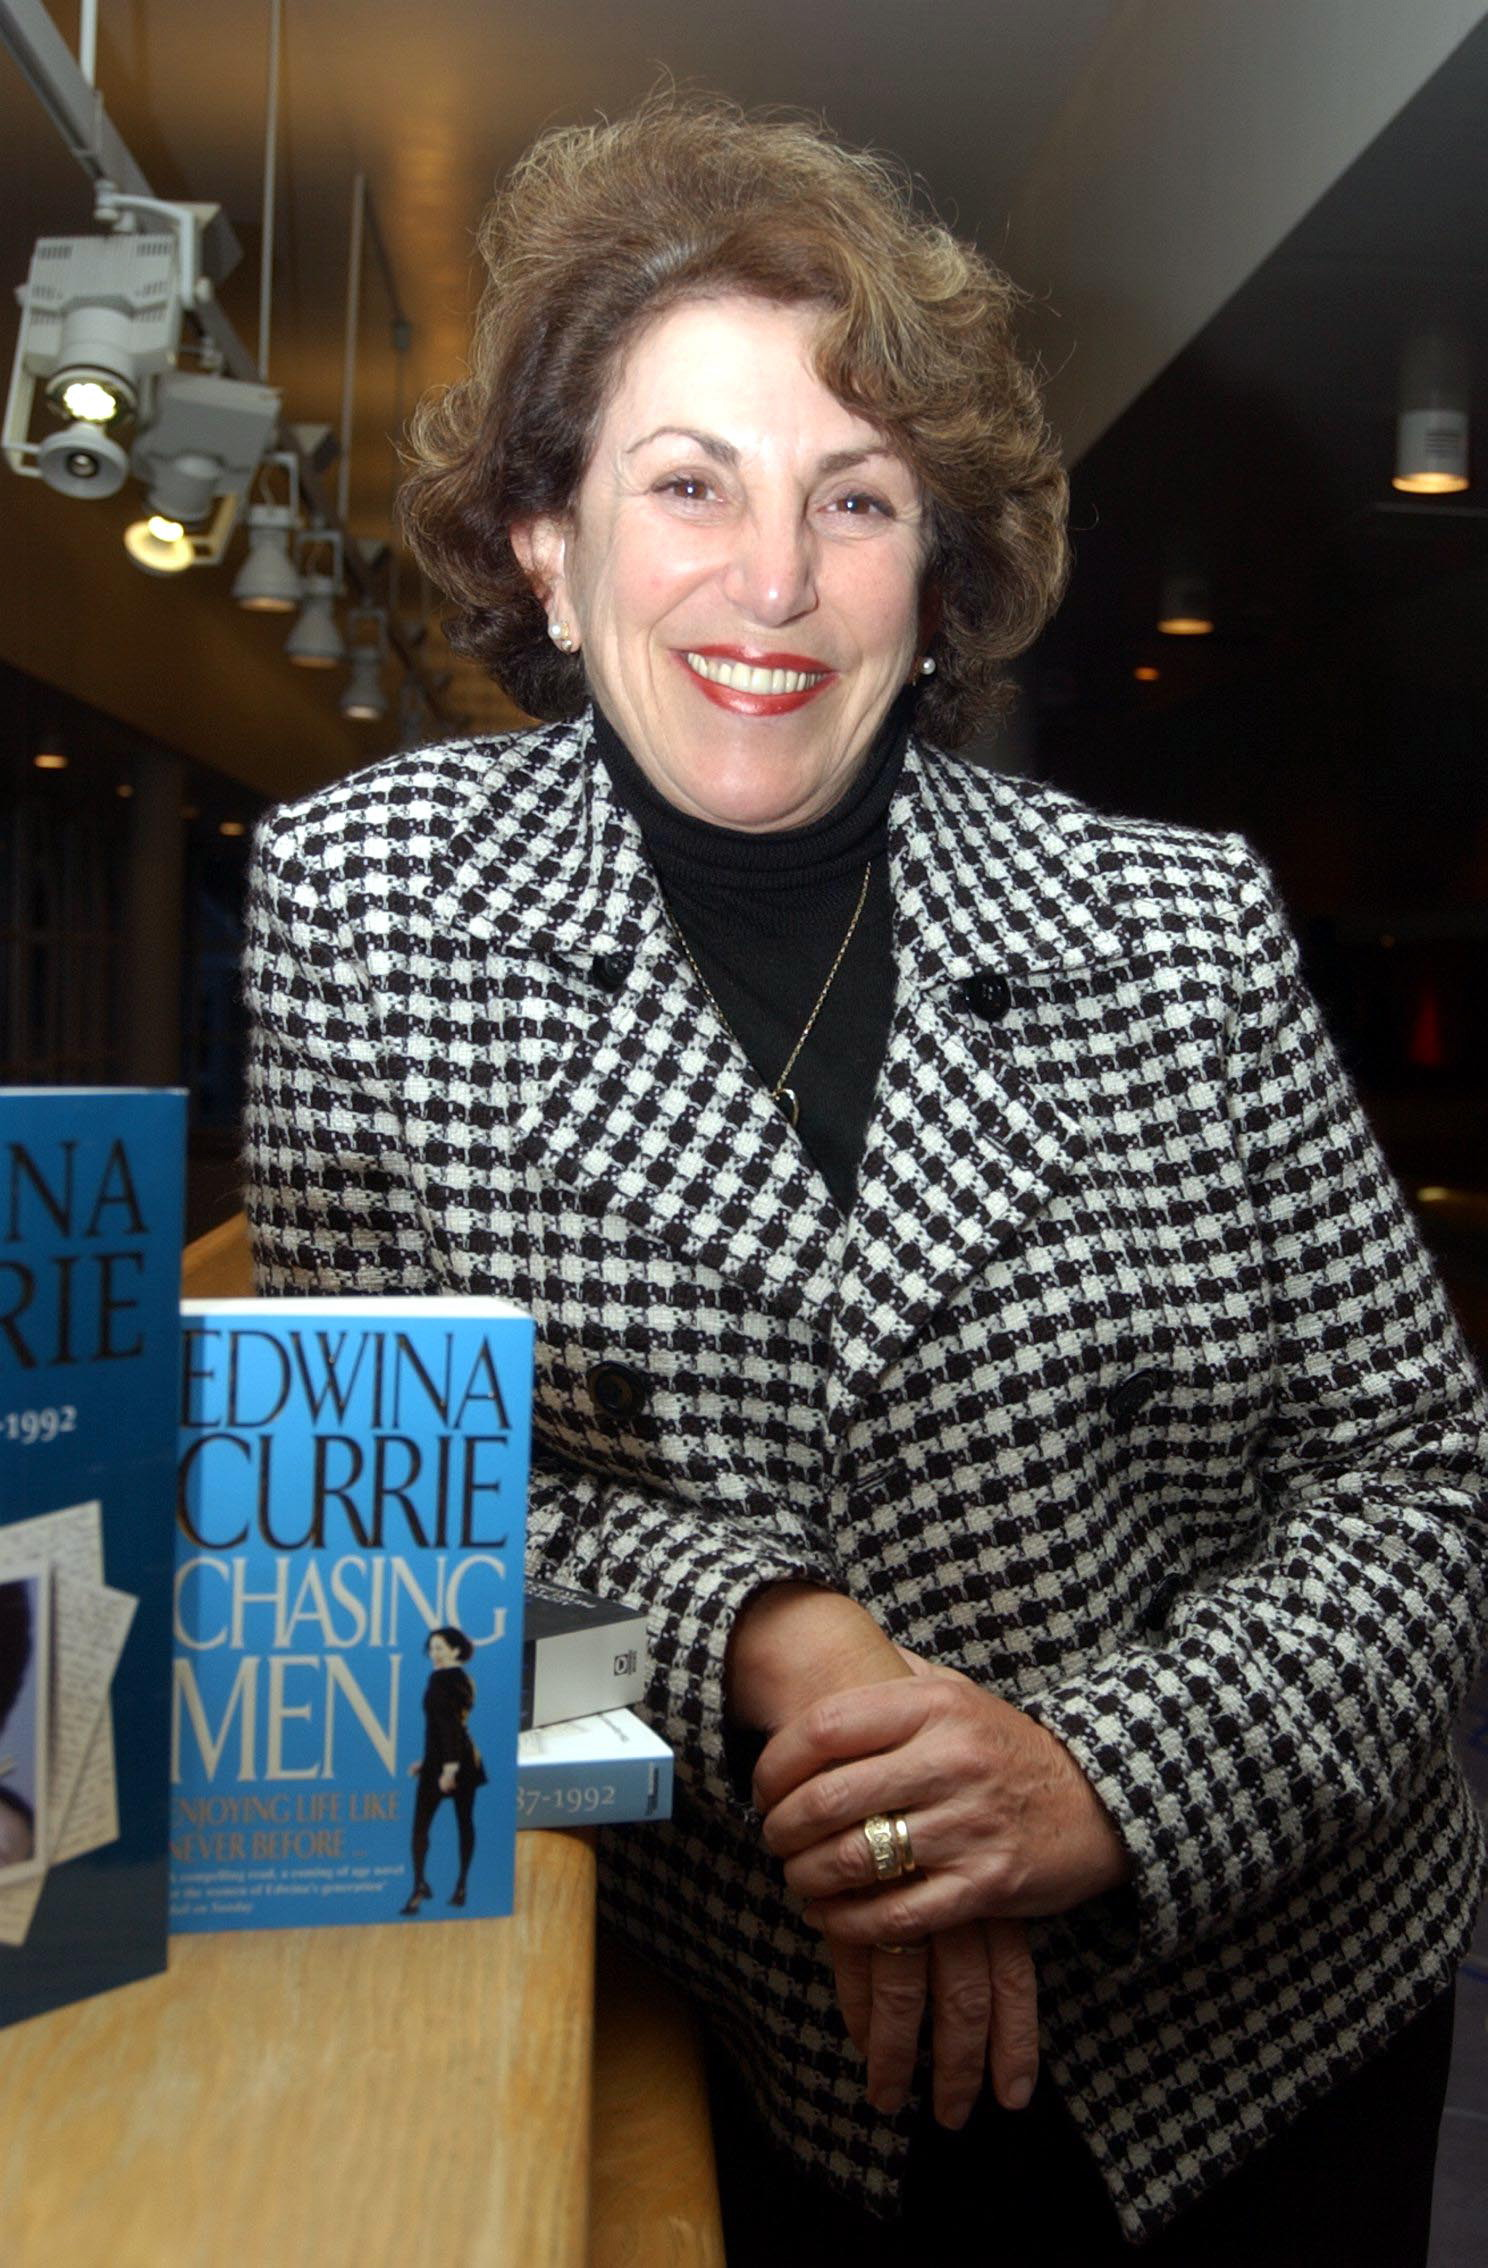 edwina currie nowedwina currie eggs, edwina currie diaries, edwina currie daughter, edwina currie hell's kitchen, edwina currie net worth, edwina currie twitter, edwina currie resignation, edwina currie books, edwina currie brexit, edwina currie husband, edwina currie come dine with me, edwina currie 2016, edwina currie photos, edwina currie 1980, edwina currie images, edwina currie guernsey, edwina currie quotes, edwina currie author, edwina currie vs gordon ramsay, edwina currie now